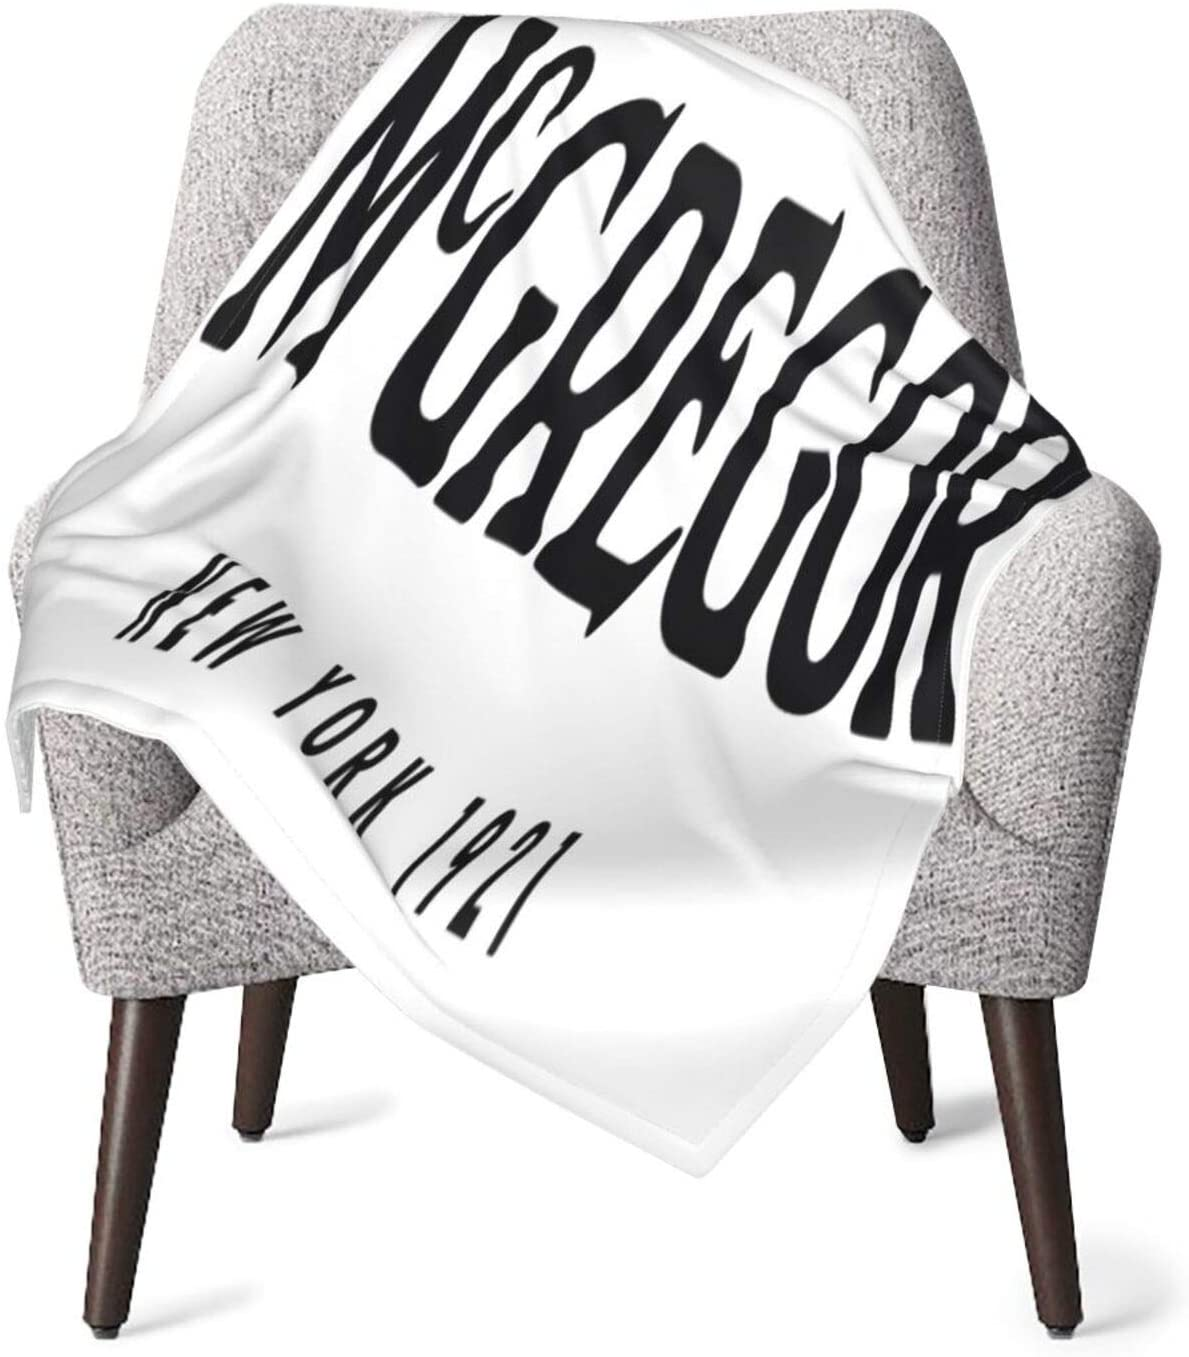 Entuil Conor McGregor Baby Blanket Super Soft Receiving Blankets for Newborns and Toddlers Daycare Preschool 30 X 40 Inch